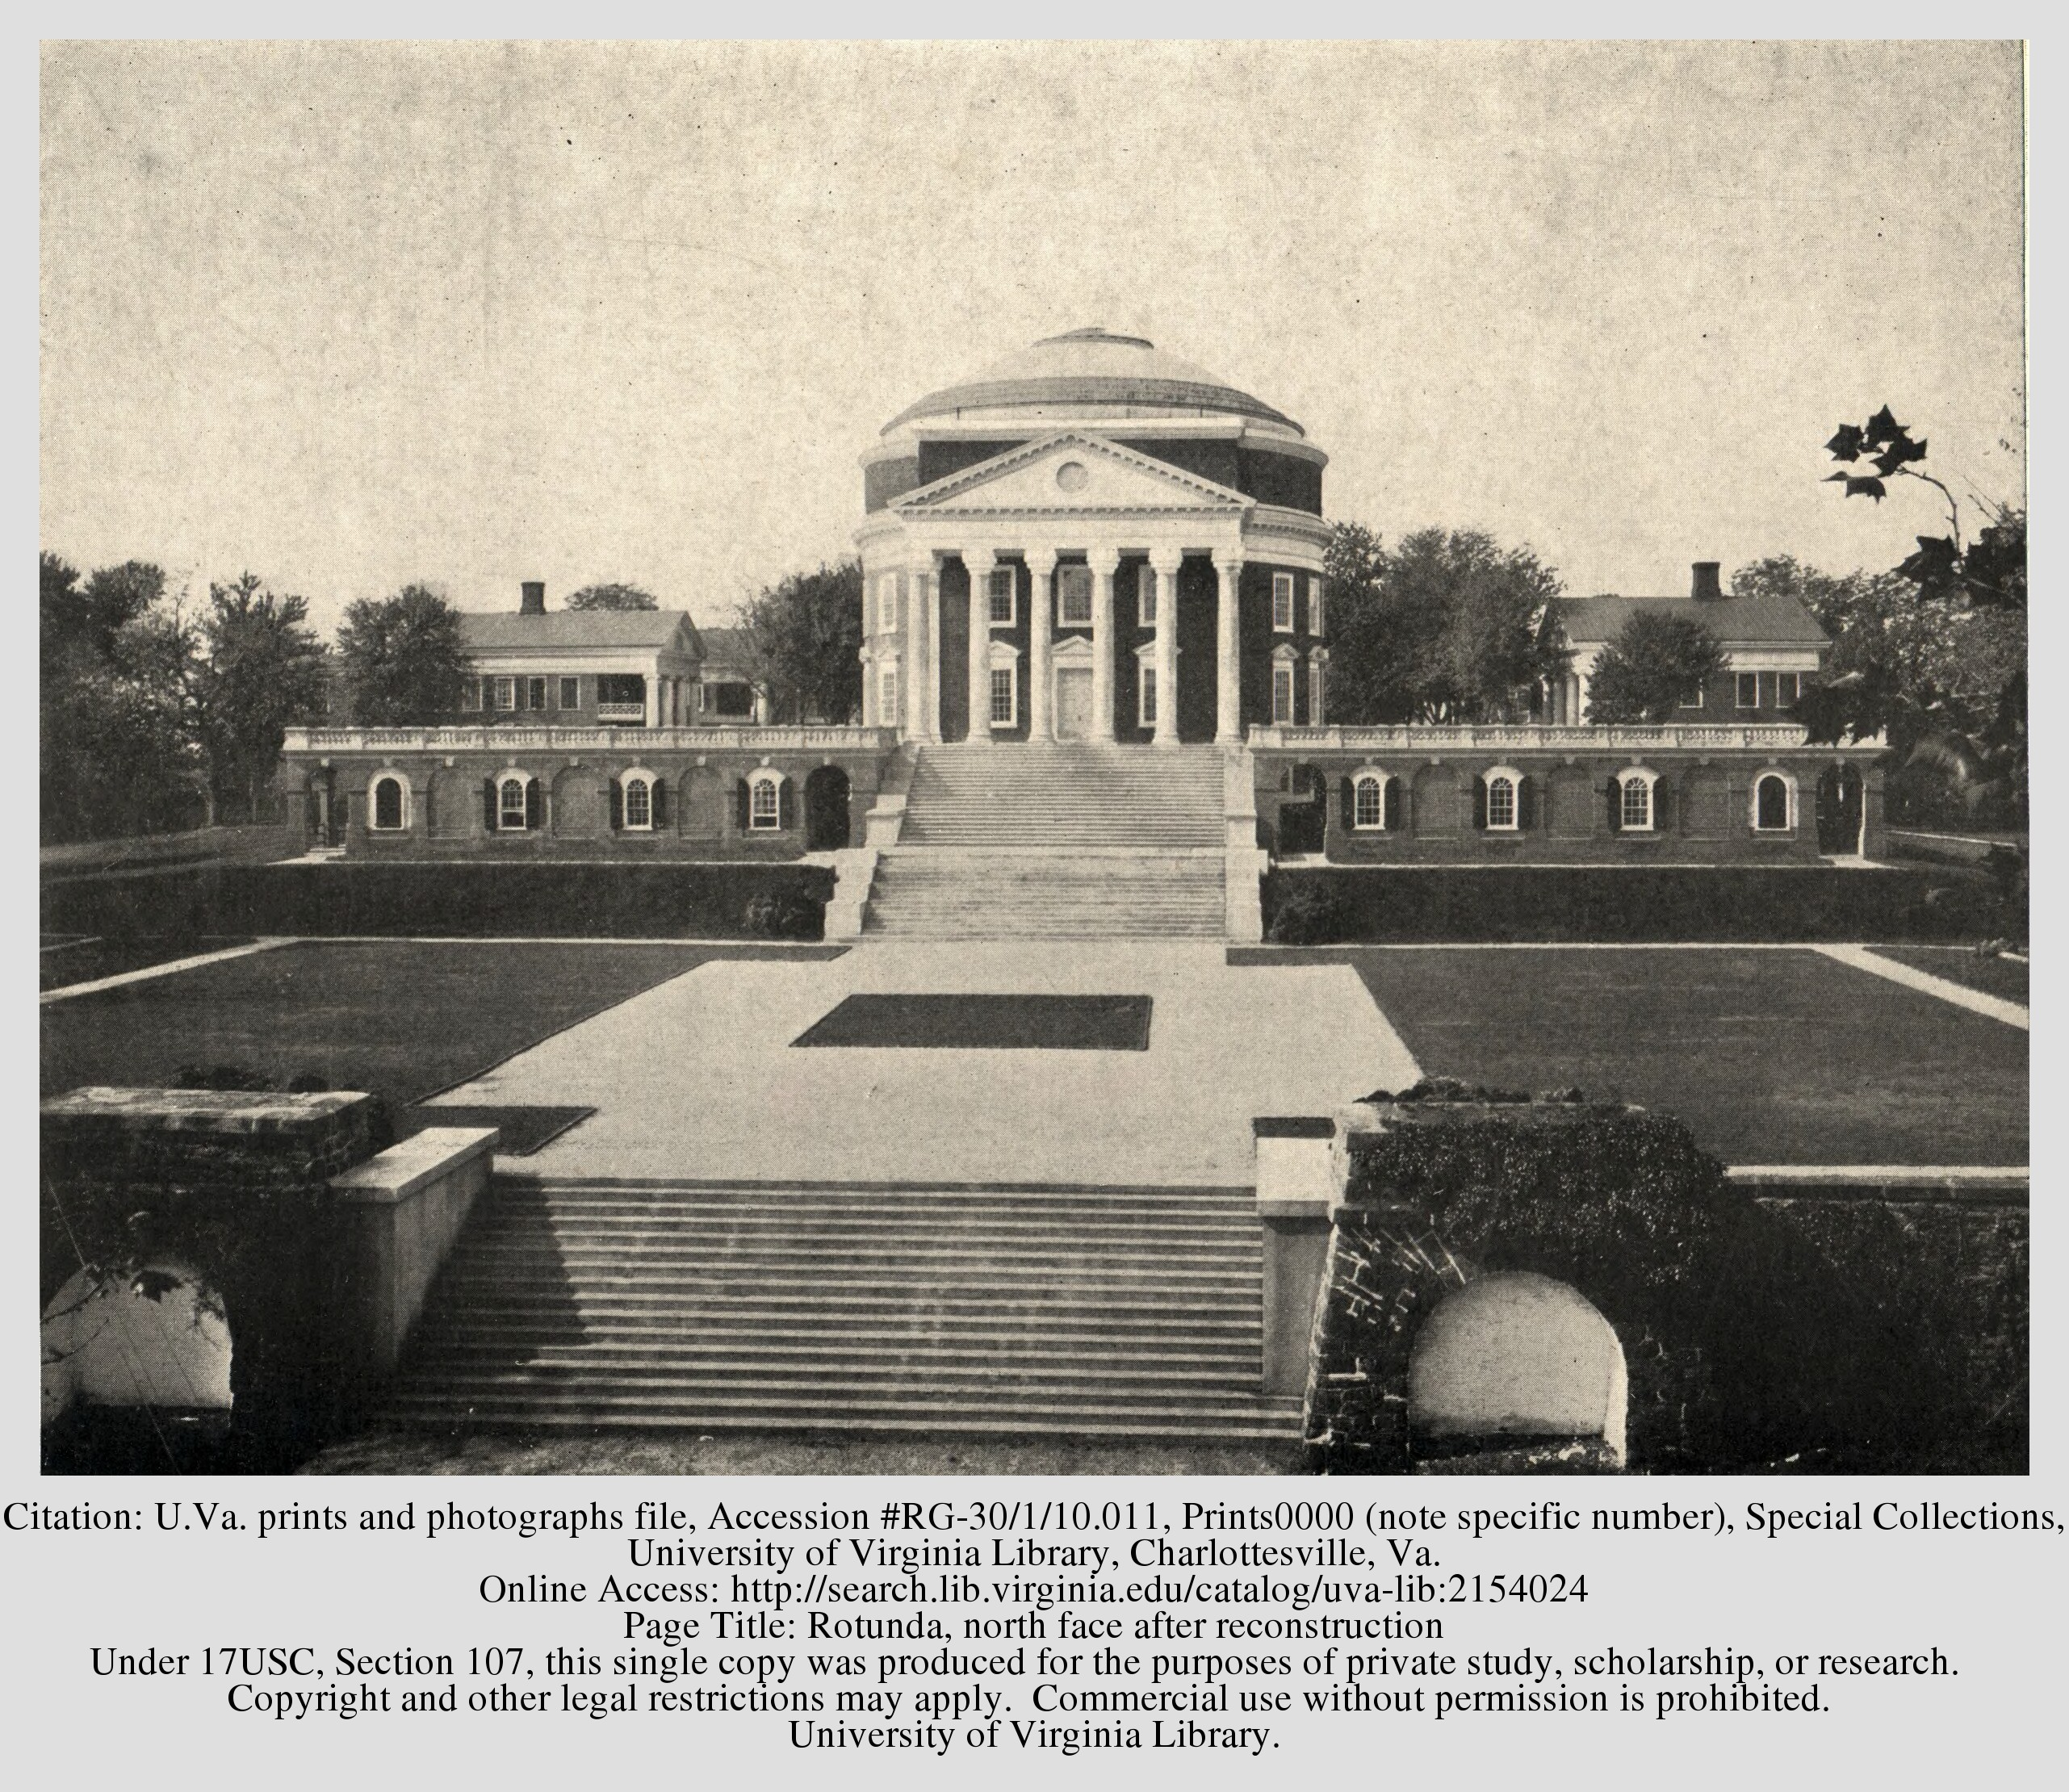 The reconstructed Rotunda in 1898. Courtesy of the Library of the University of Virginia.